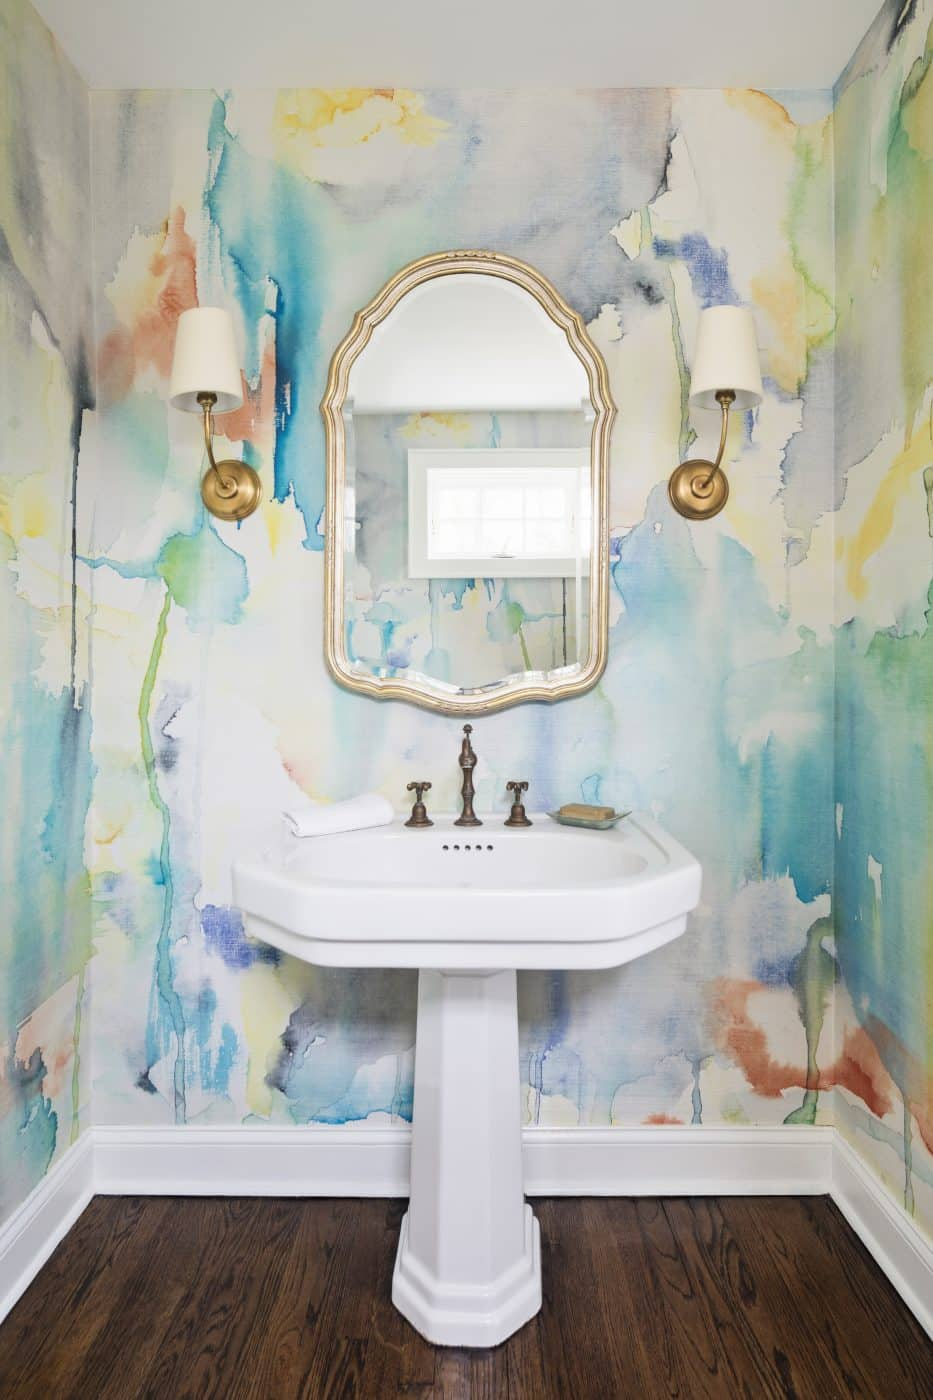 The powder room of a Greenwich, Connecticut house with interiors by Danielle Fennoy of Revamp Interior Design